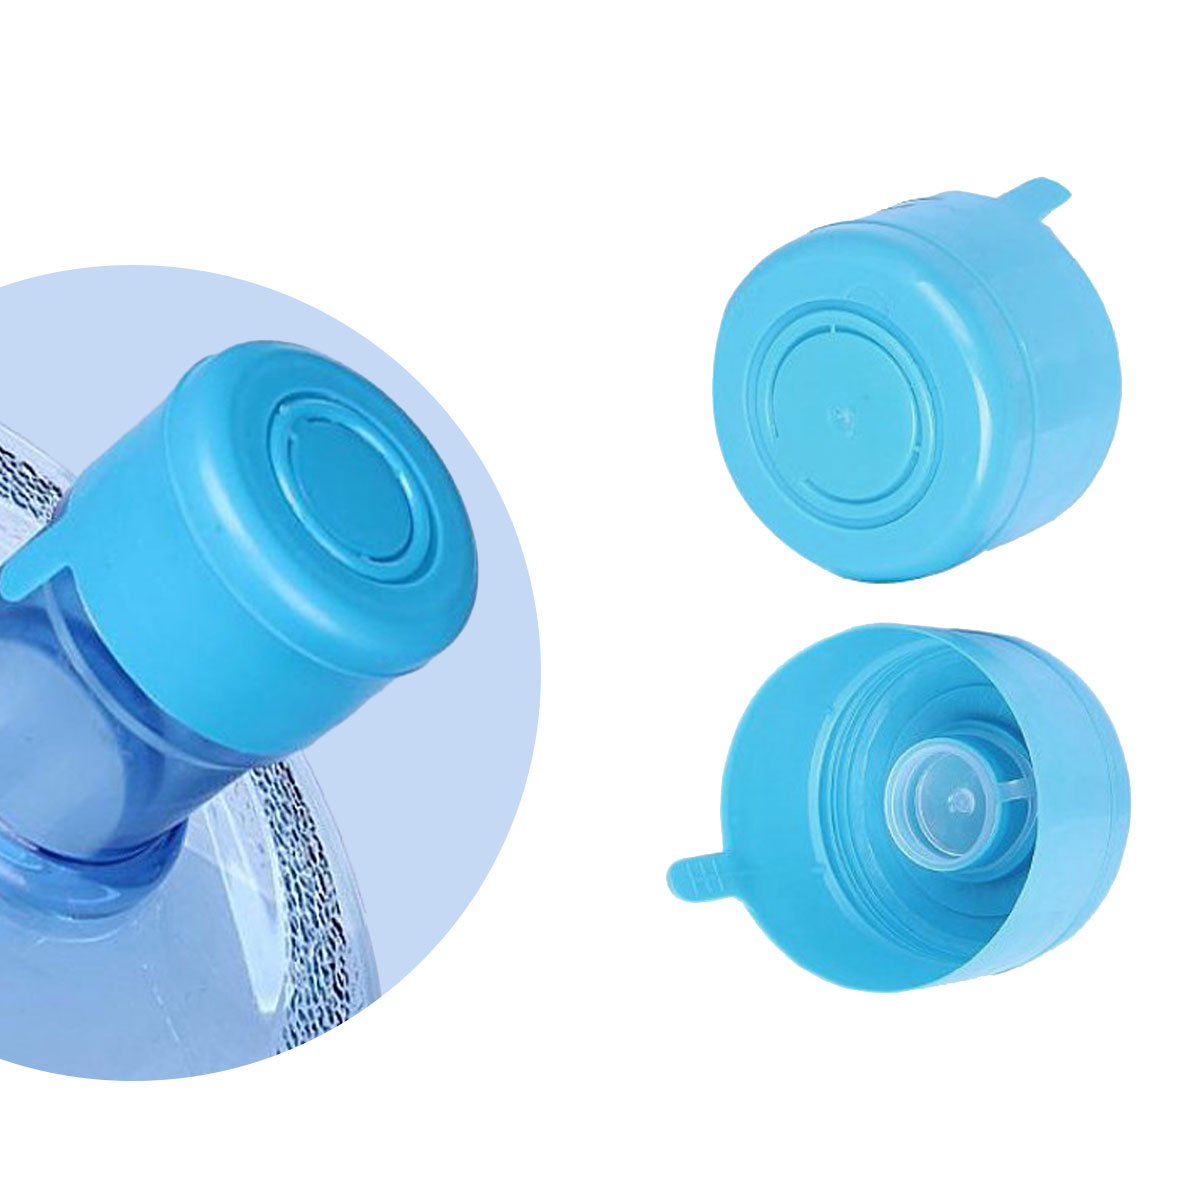 5 Reusable Water Bottle Non-Spill Cap Lid Replace for 55mm 3-5 Gallon Water Jug